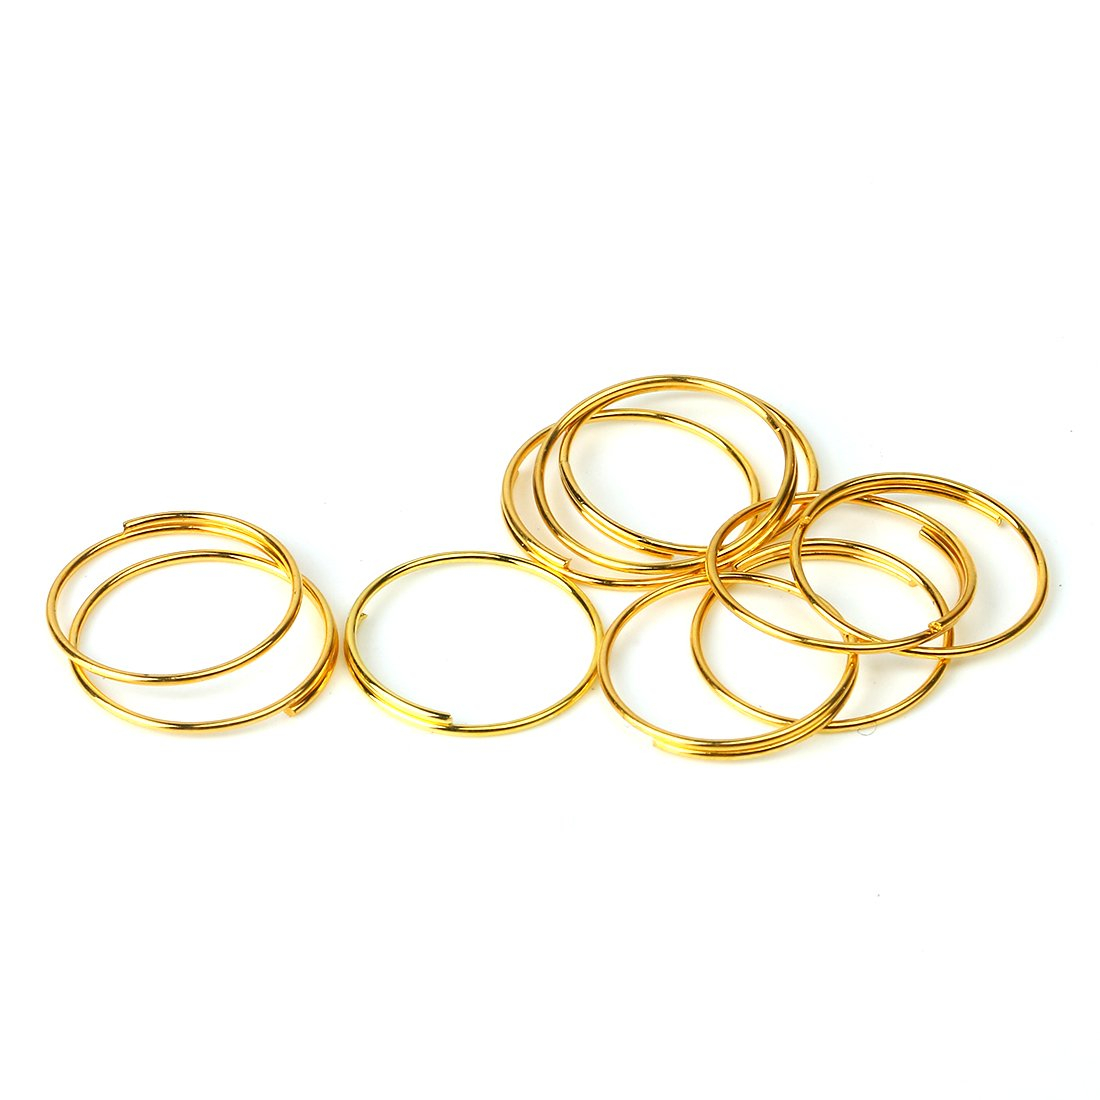 Earrings Crystal Garland Keys Jewelry Making and Craft Ideas Necklaces Crystal Curtain 11mm, Golden H/&D 500pcs Round Edged Split Circular Ring Clips for Crystal Lamps